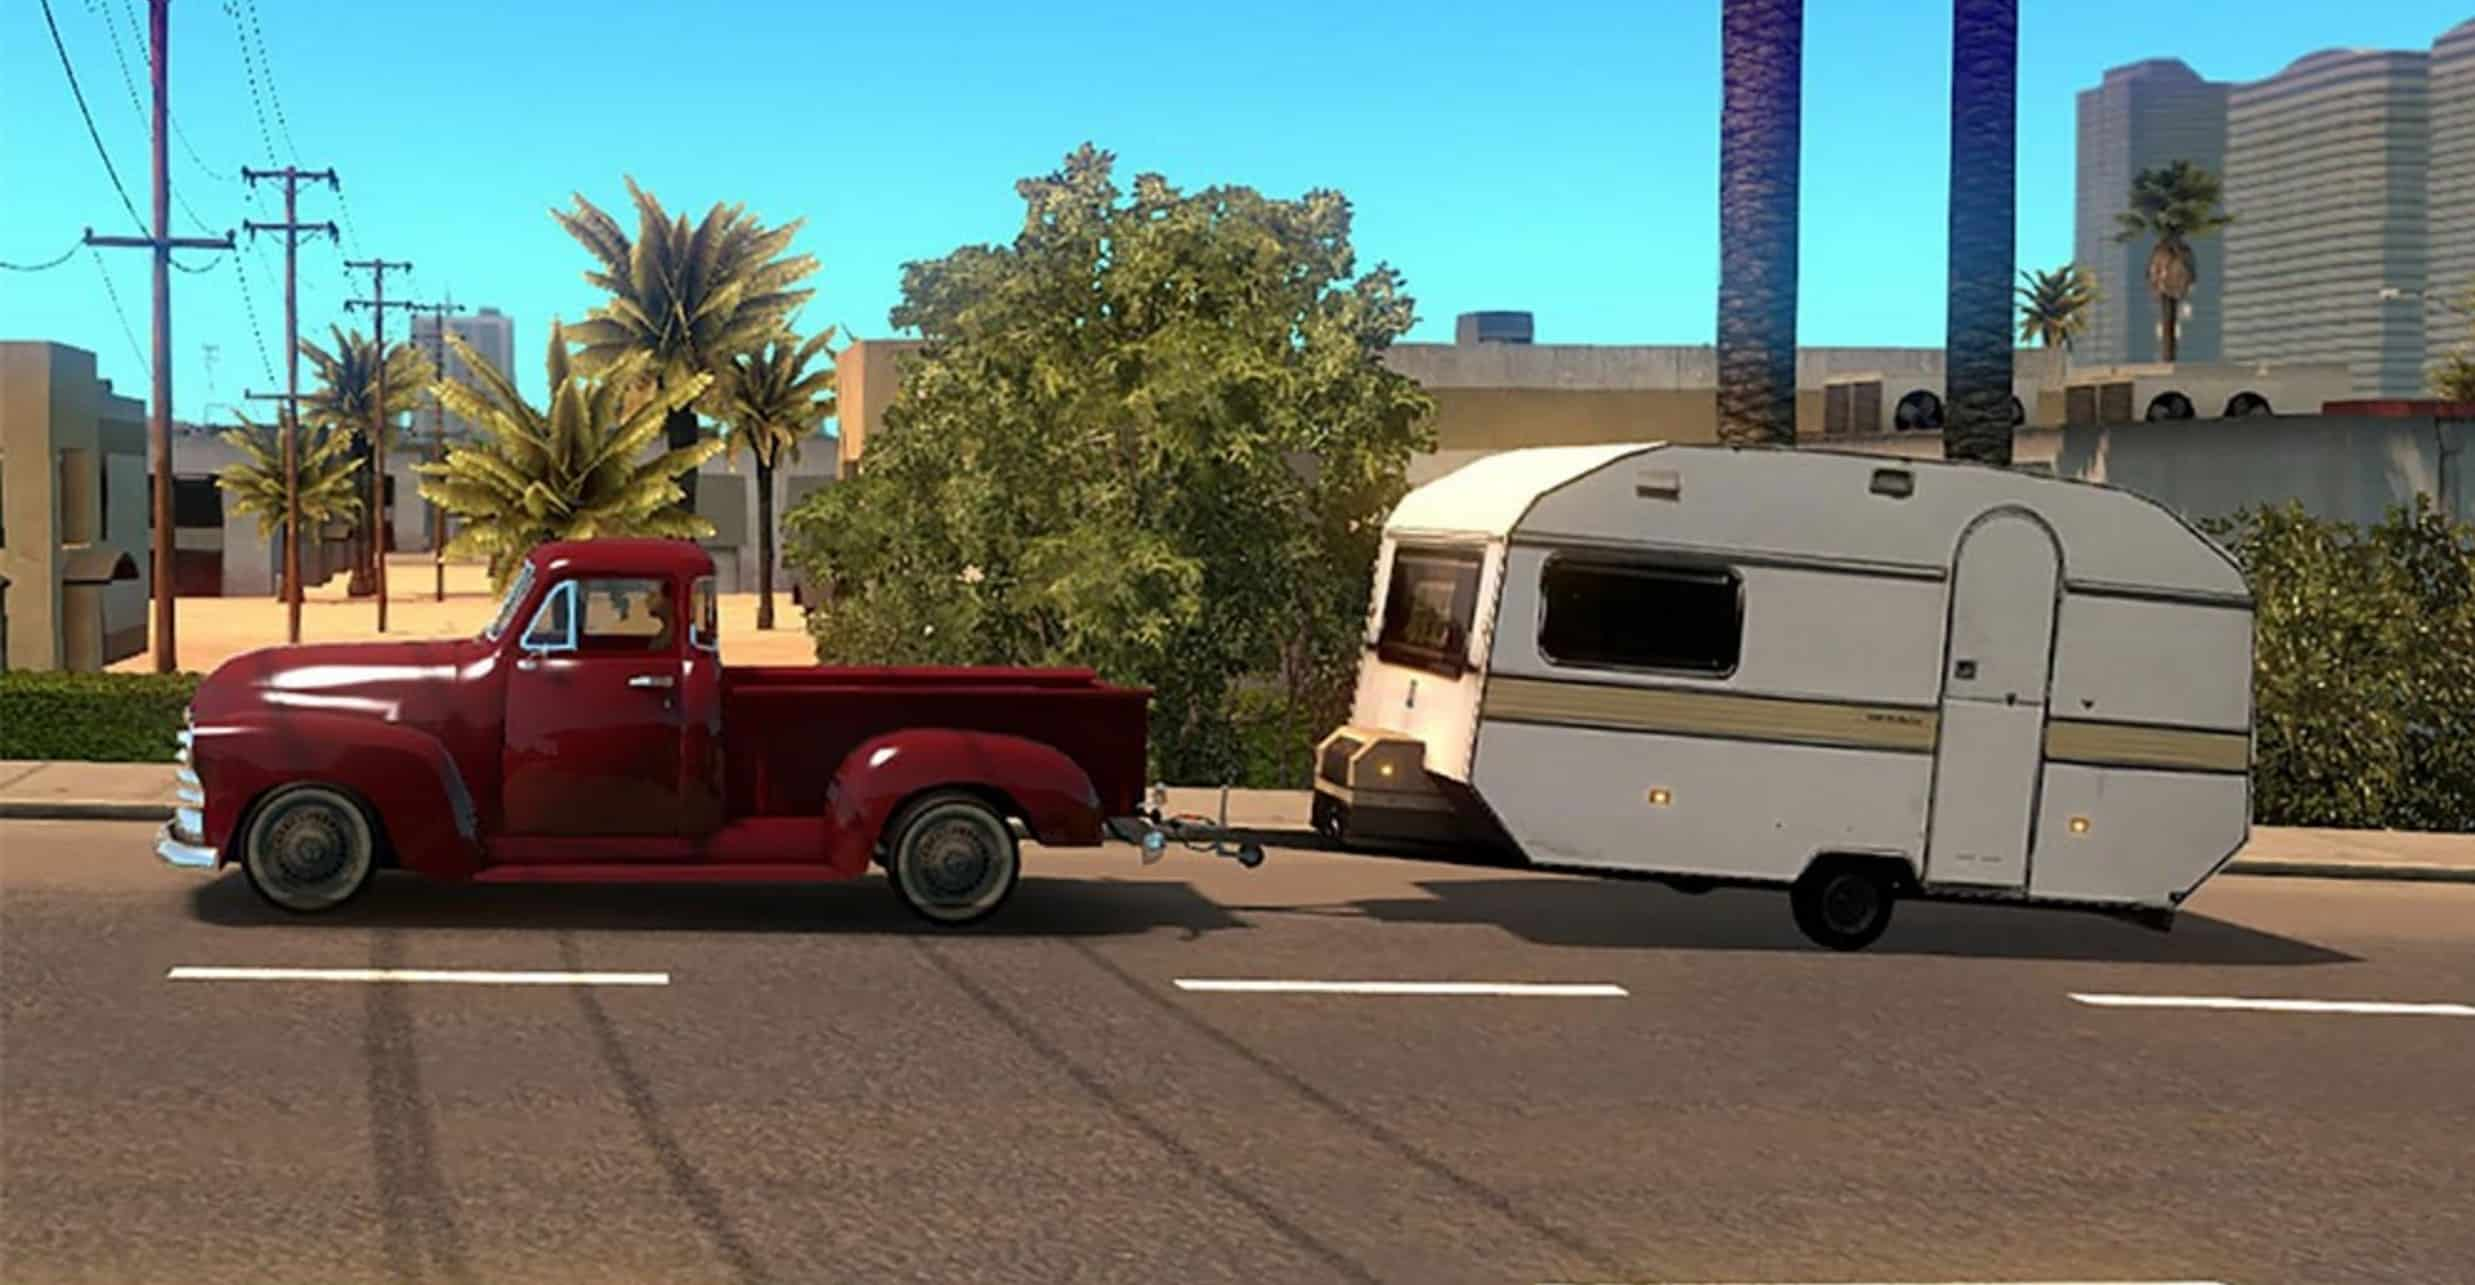 Cars with caravans a i  traffic Mod - American Truck